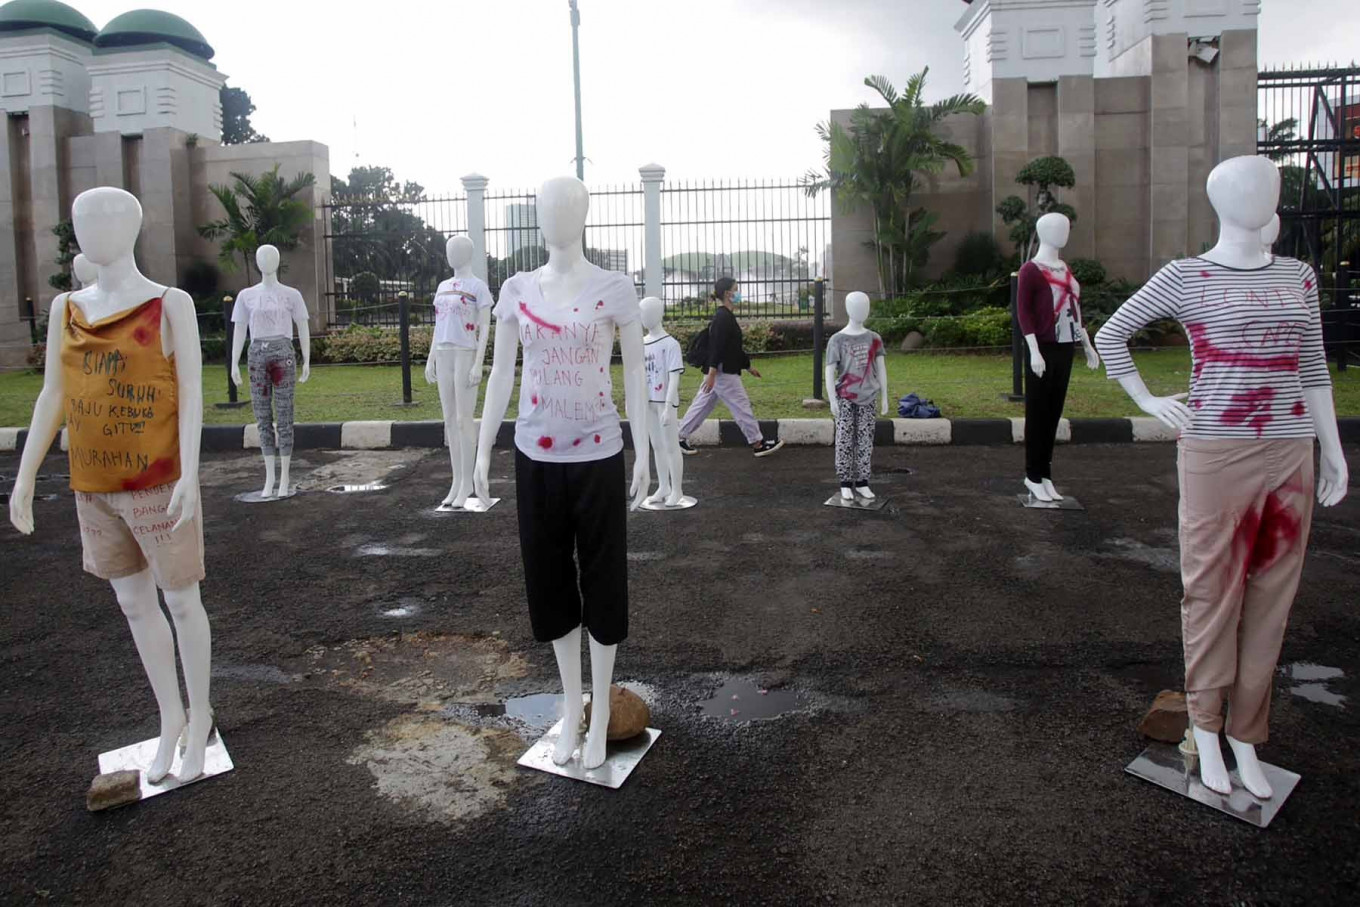 Mannequins stand outside of the House of Representatives compound in Central Jakarta on Dec. 8. The protestors who placed them there demanded that the House continue with the deliberation and passage of the sexual violence eradication bill. The National Commission on Violence Against Women (Komnas Perempuan) has reported that violence against women has increased by 75 percent during the COVID-19 pandemic. JP/Wendra Ajistyatama